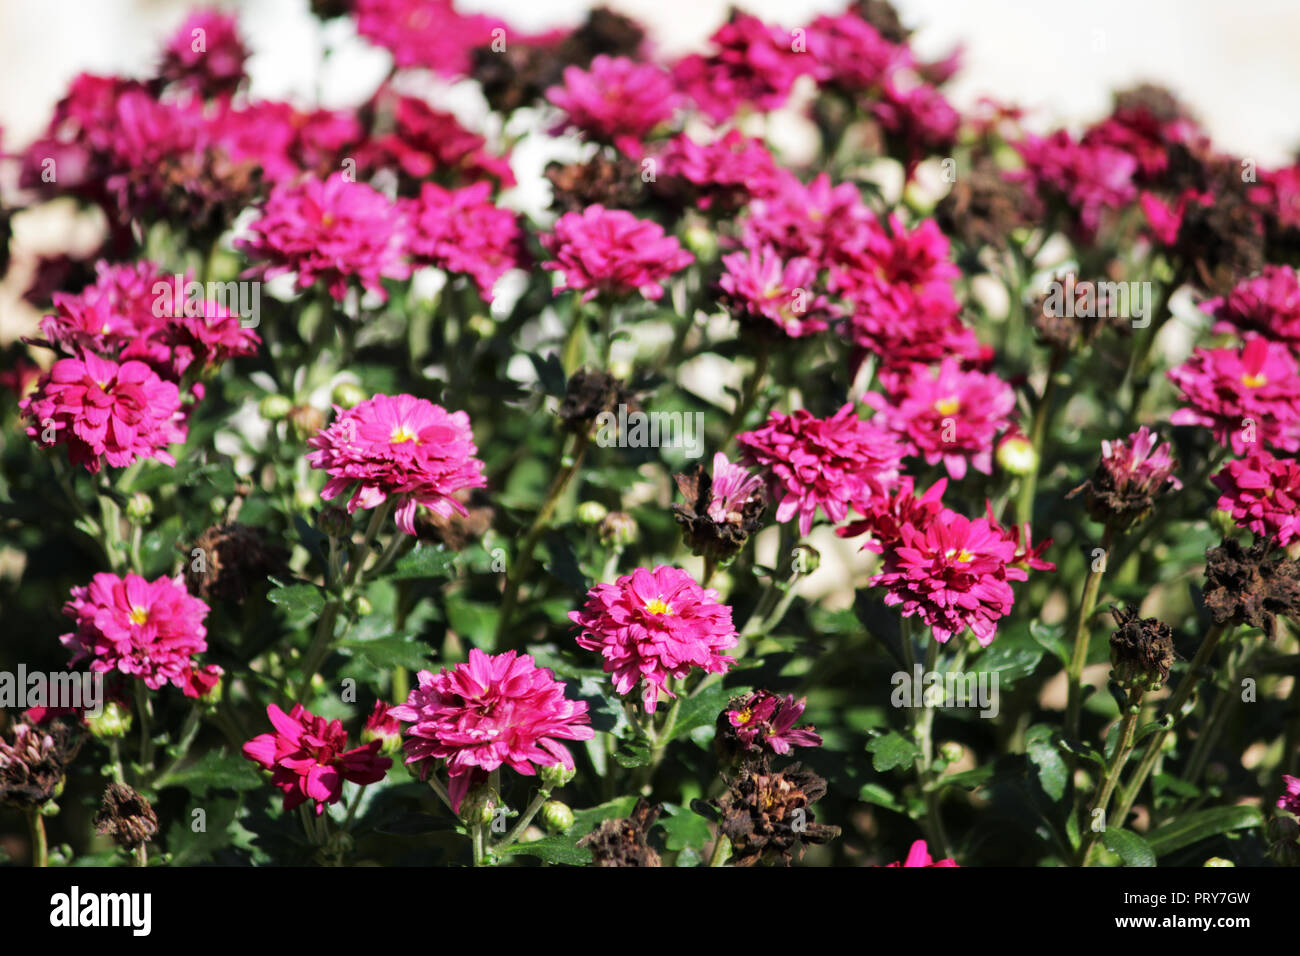 perennial spray chrysanthemum dark pink color with fading flowers in the fall on a city flowerbed. - Stock Image